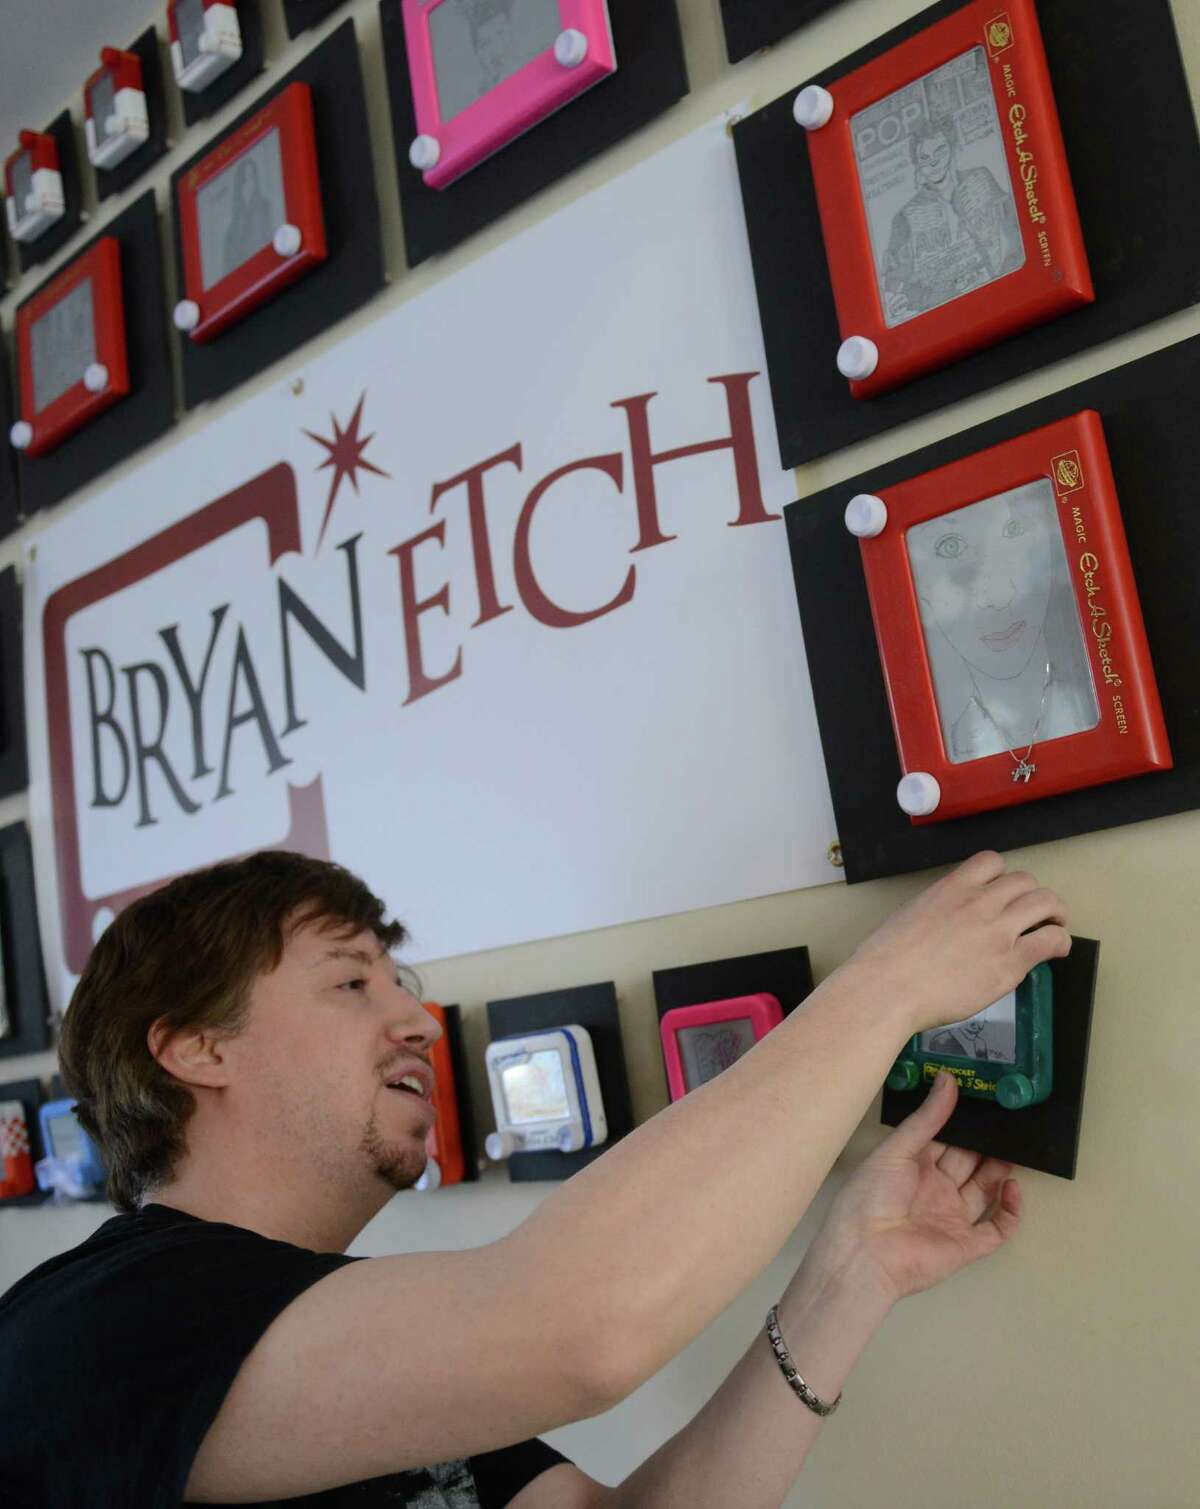 Etch-a-Sketch artist Bryan Madden hangs a new piece on the wall in his home in Danbury, Conn. Saturday, March 8, 2014. Madden began sketching in college and decided to take it up professionally after getting a positive reponse from viewers on the Internet. The work is preserved by removing the sand and aluminum powder after the piece is completed.